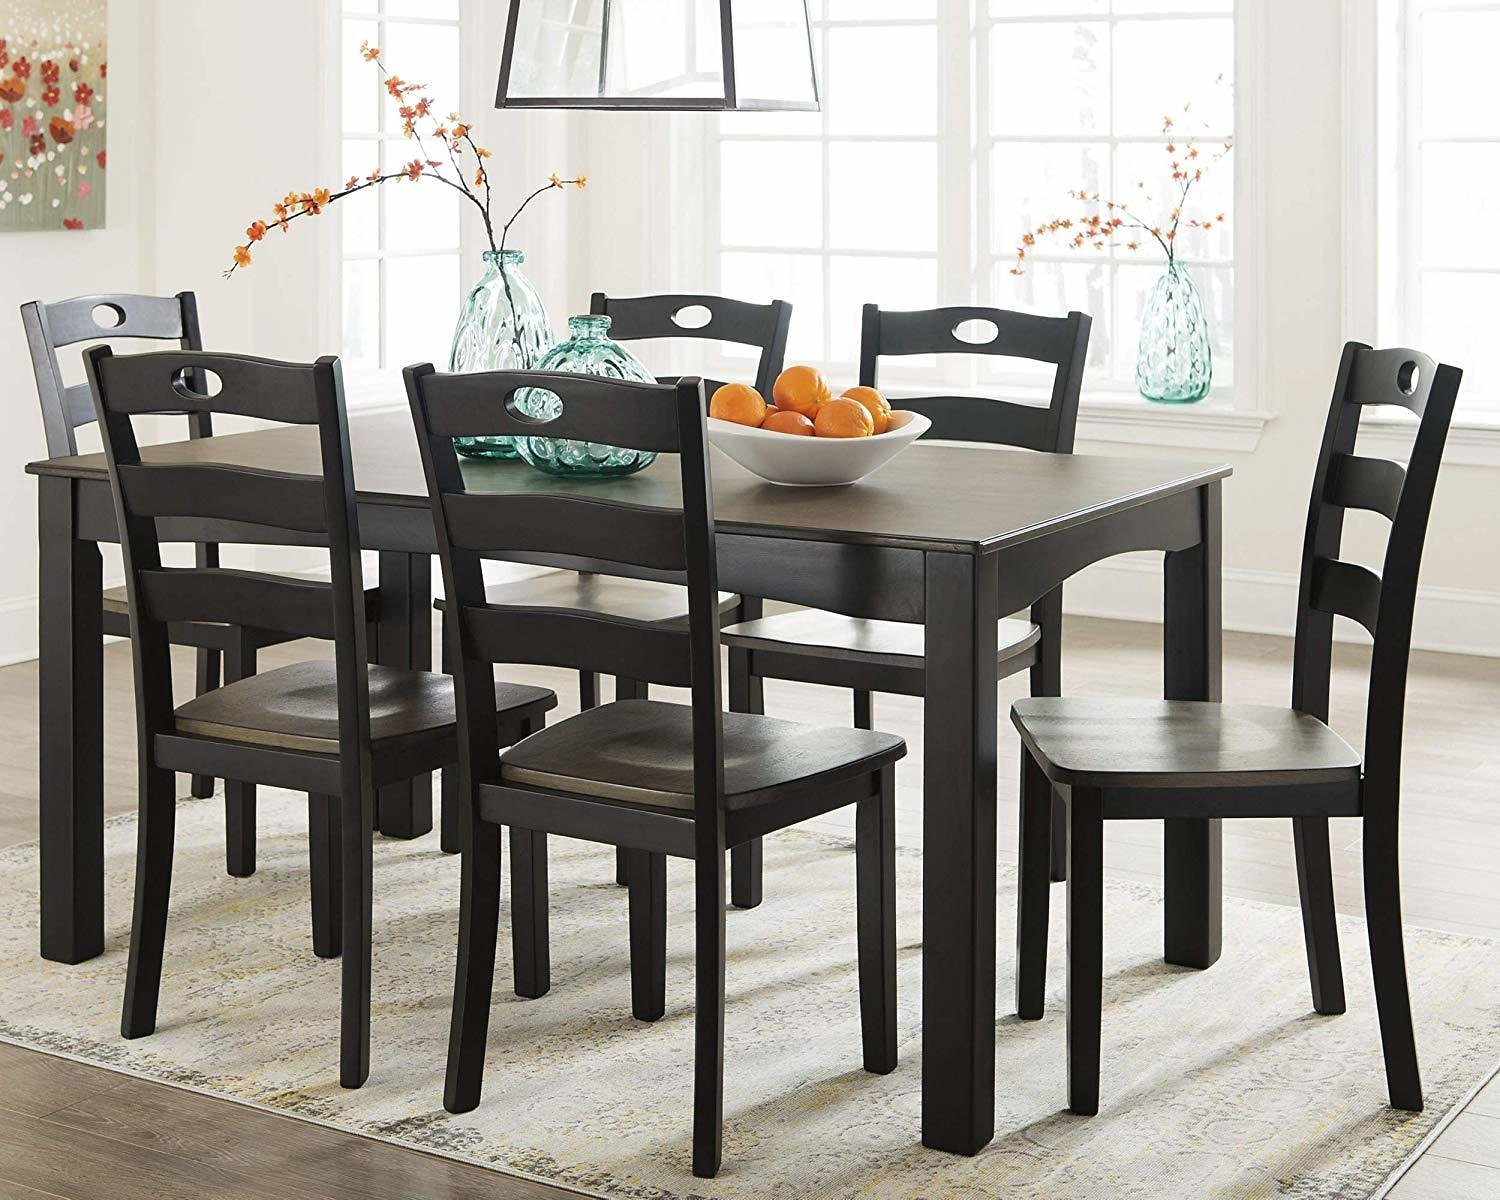 (Ships Free) Signature Design by Ashley D338-425 Table and 7 Chairs